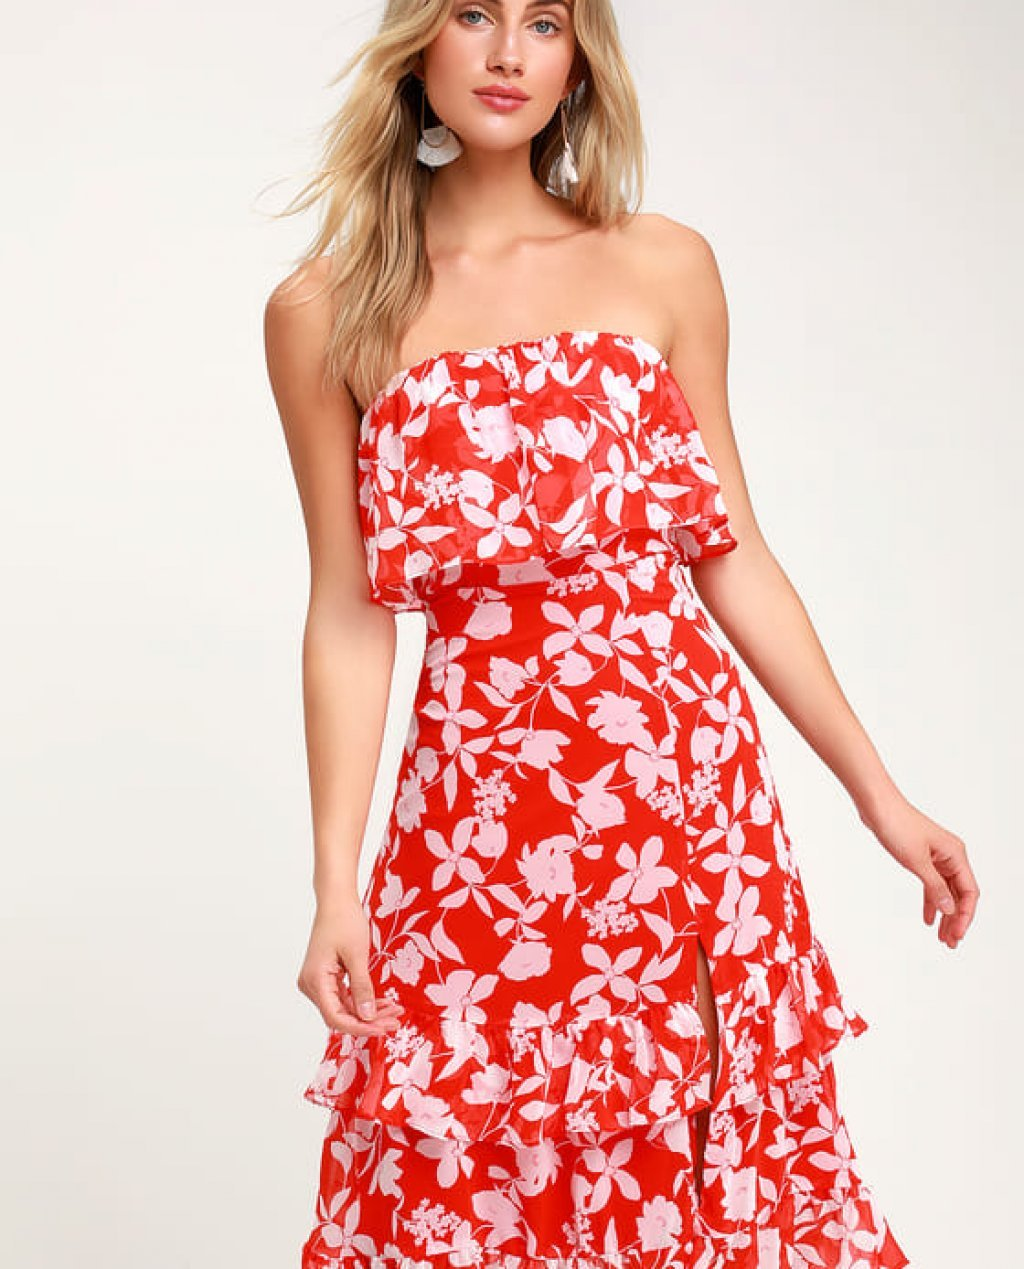 Paradise Is Waiting Red Floral Print Strapless Midi Dress